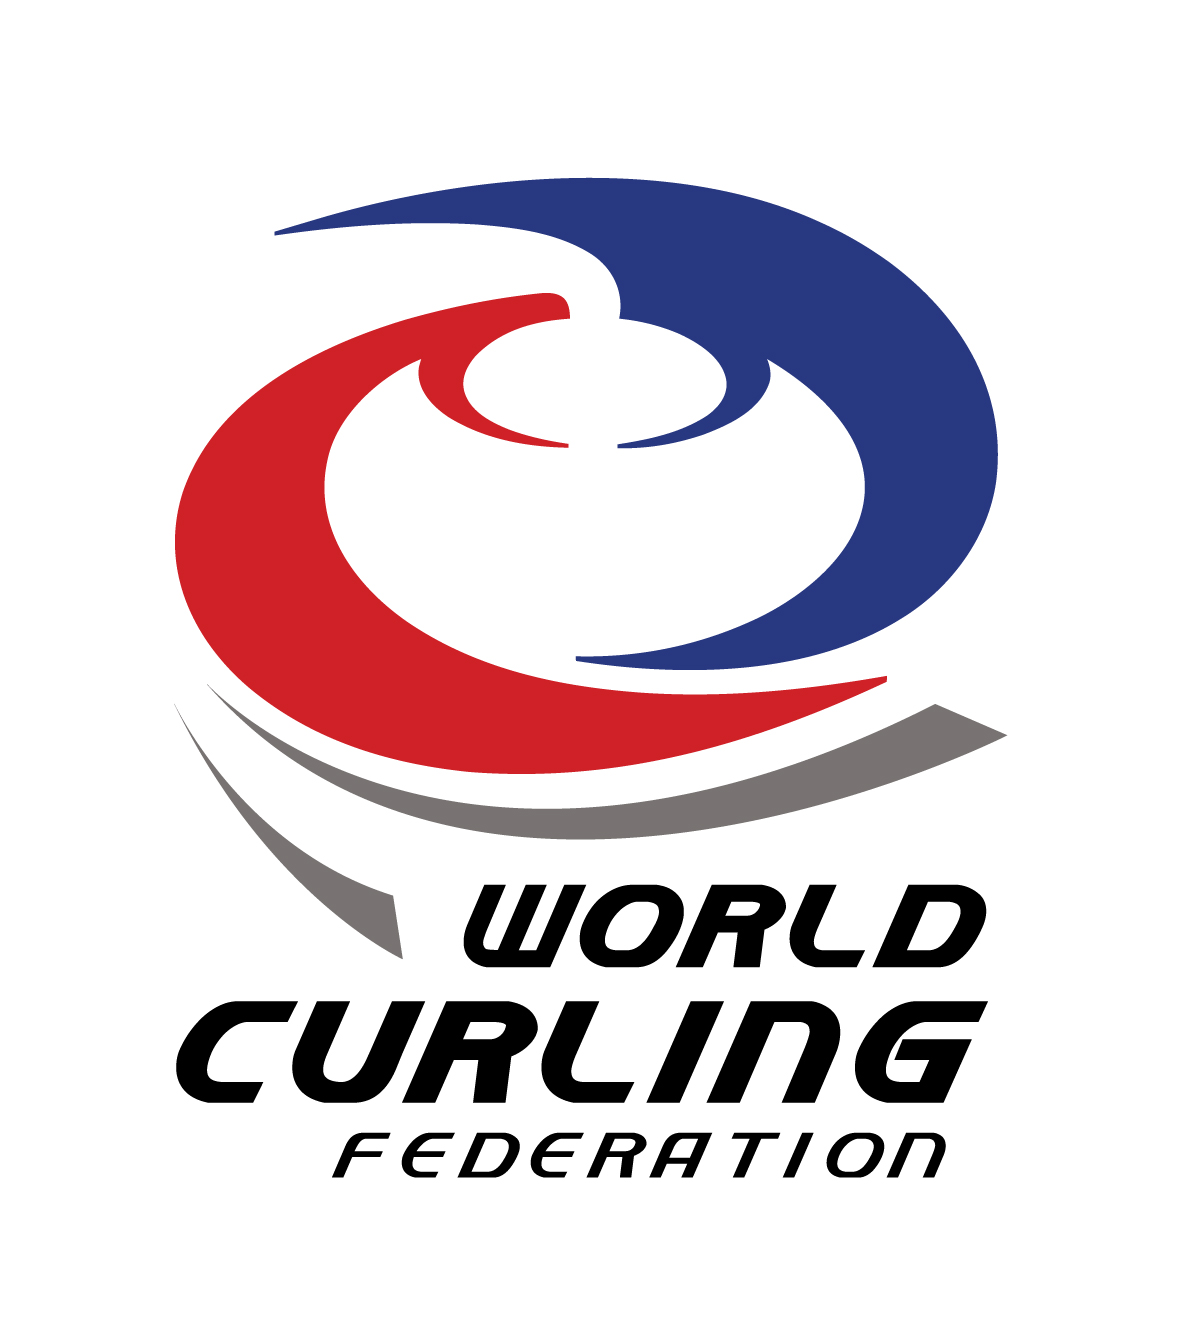 Media Job: Communications and media relations manager, World Curling Federation